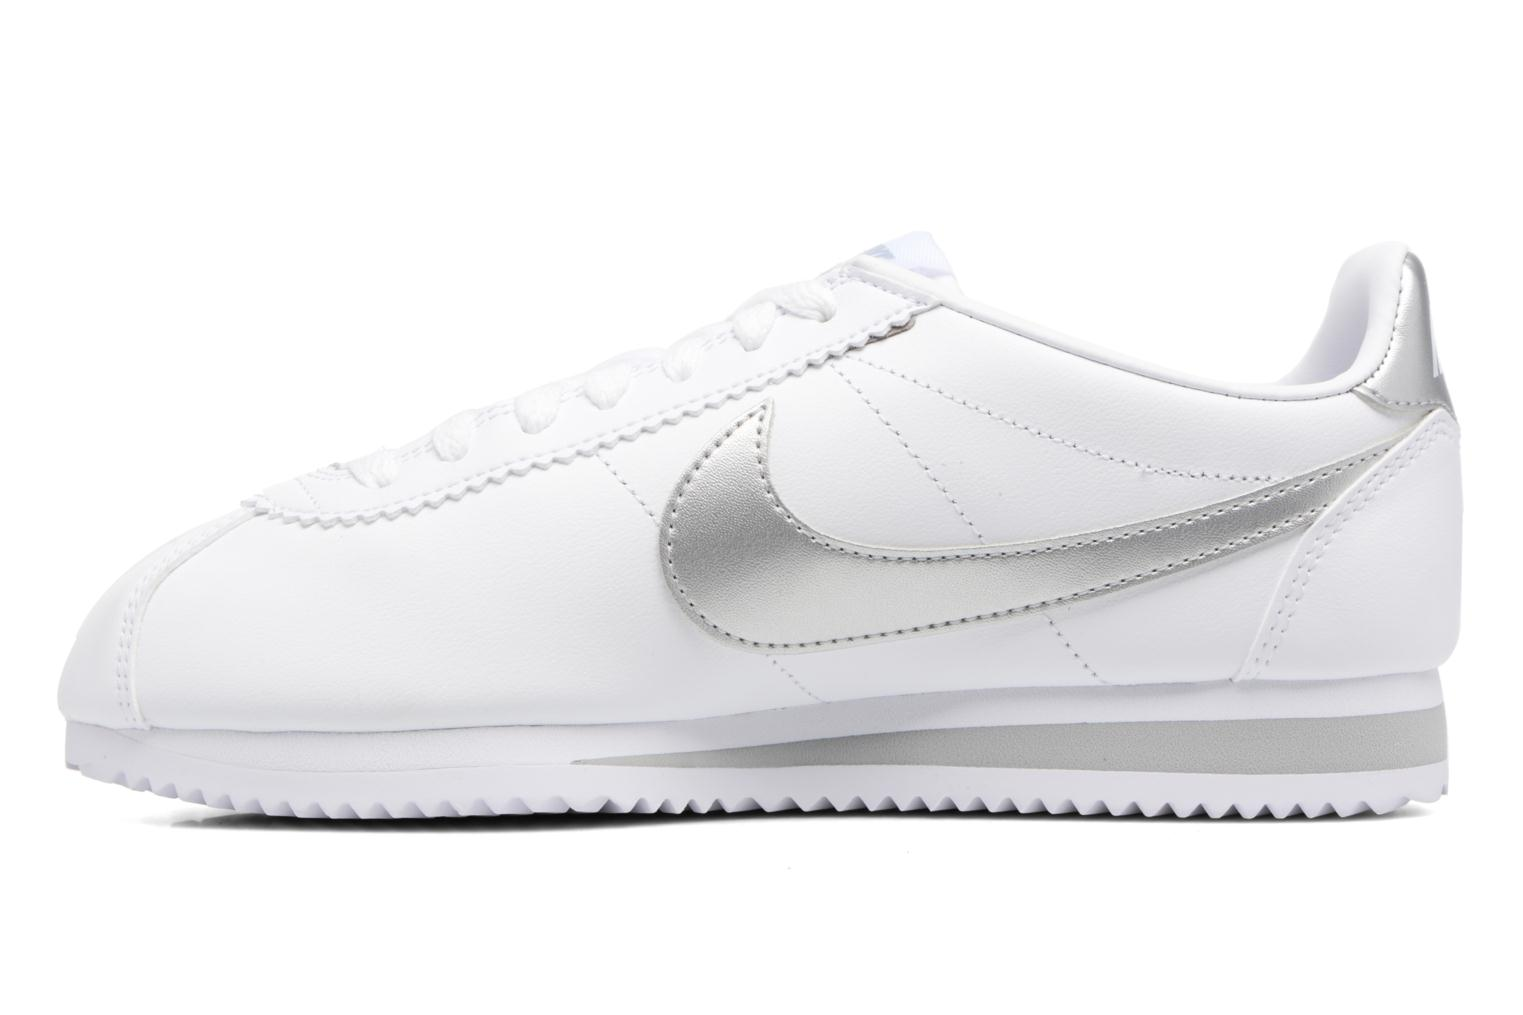 Wmns Classic Cortez Leather White/Metallic Silver-Wolf Grey